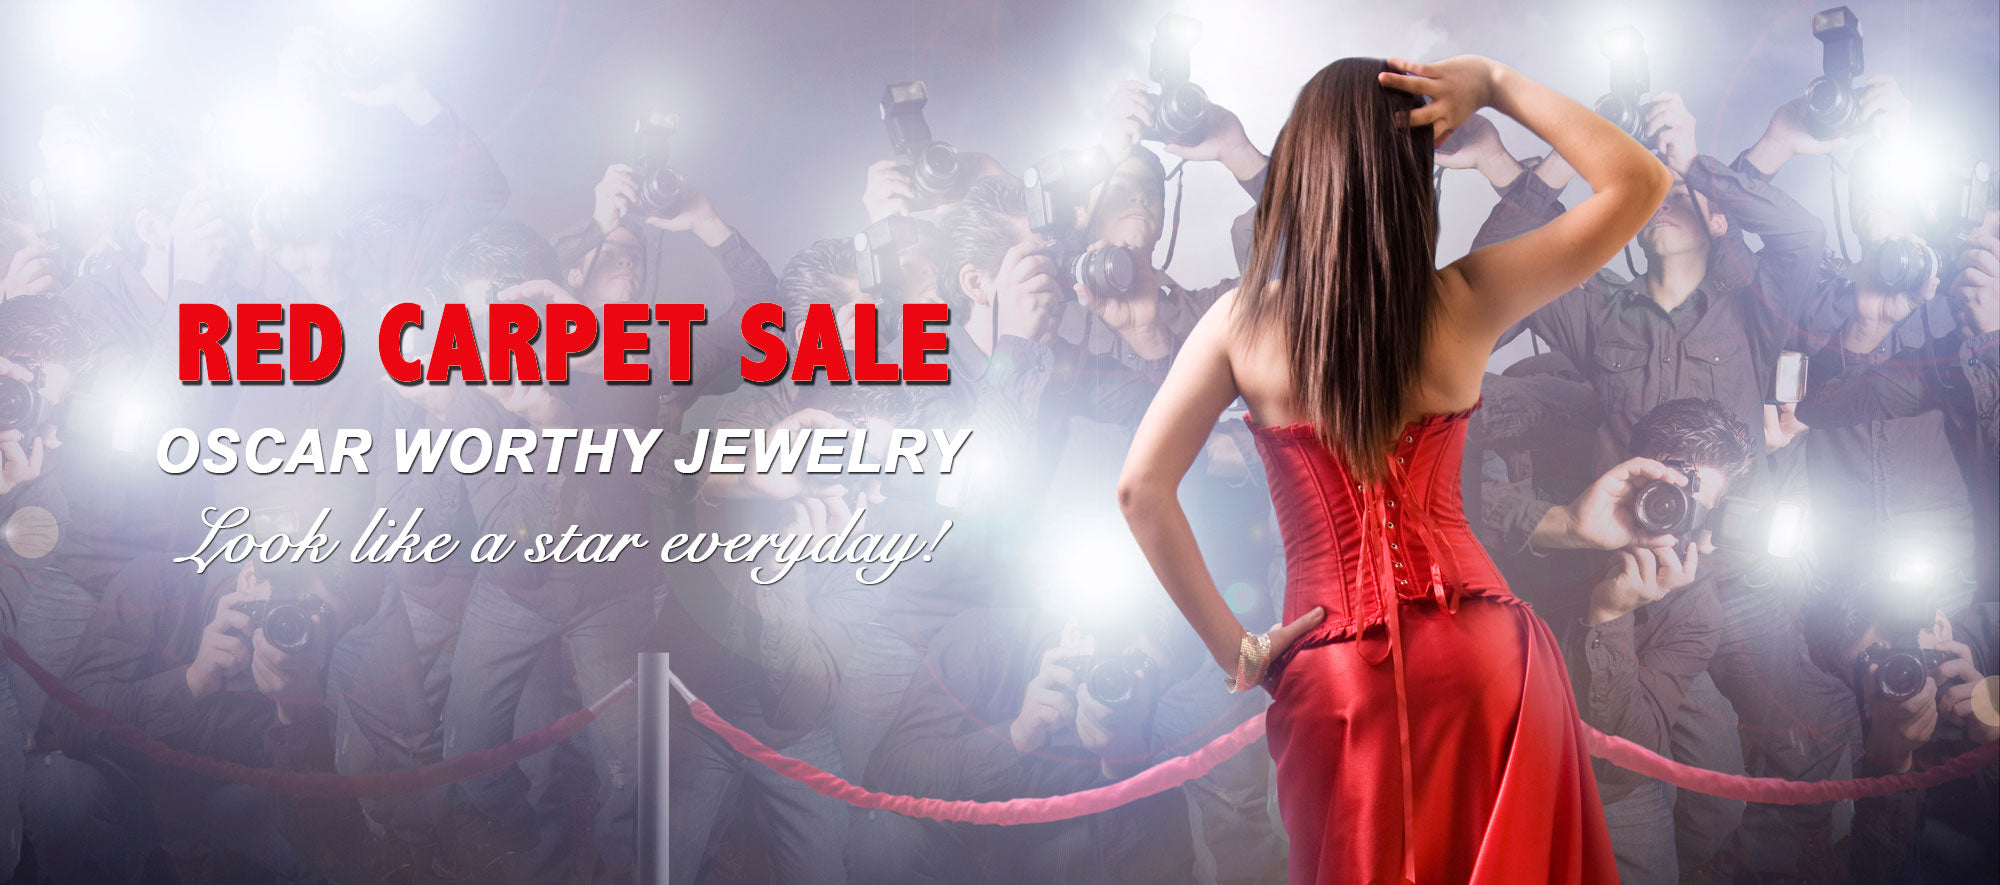 Cate and Chloe Red Carpet Jewelry Sale oscar worthy necklaces earrings rings bracelets for every day.